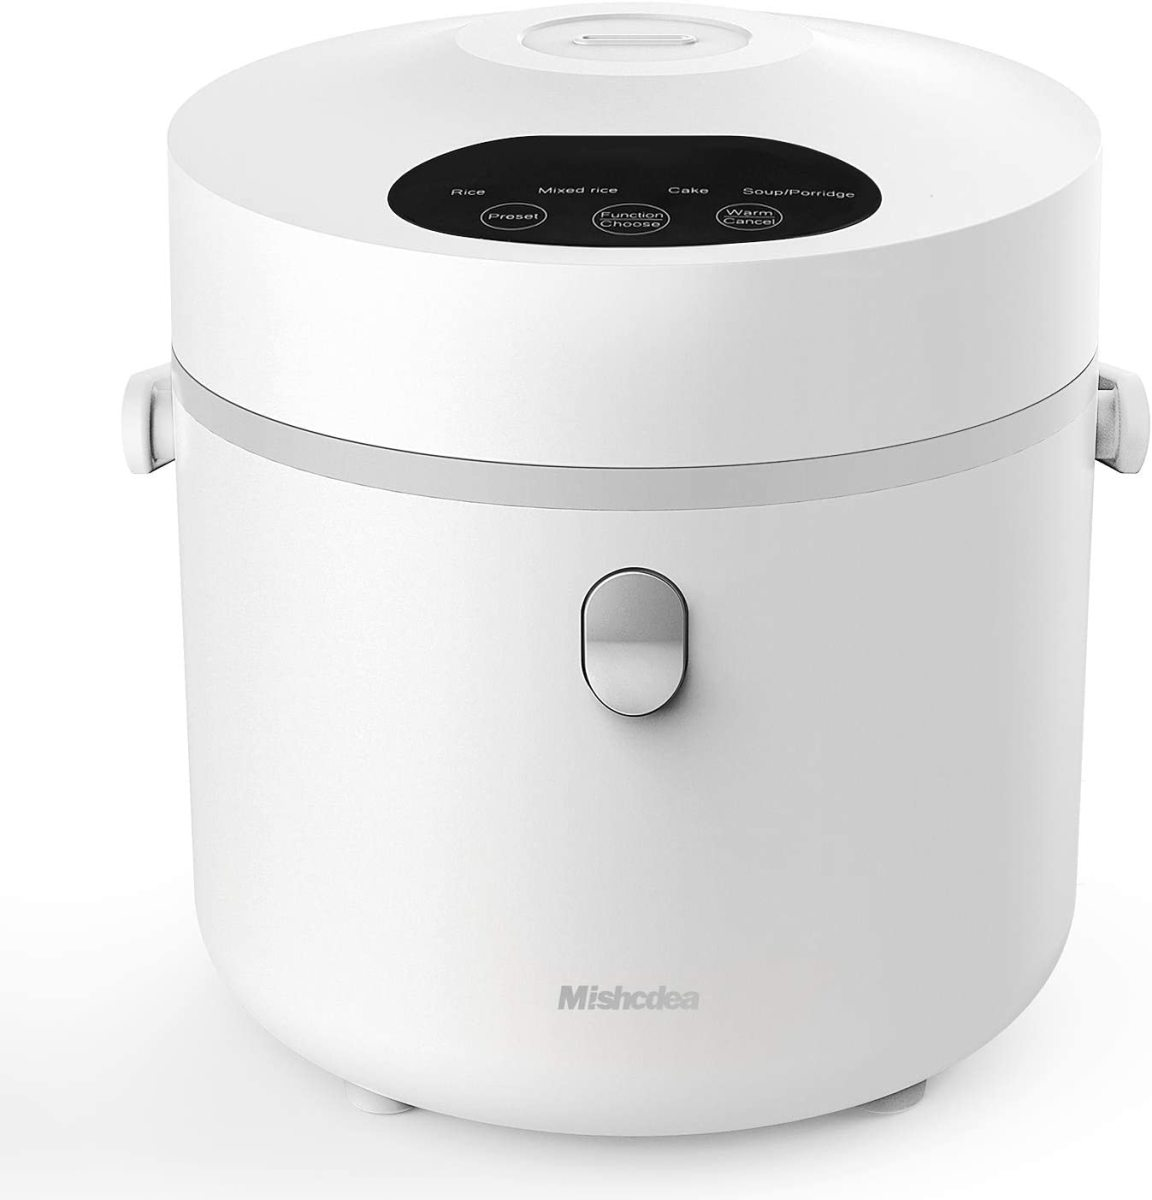 The Mishcdea Small Rice Cooker, Personal Size.